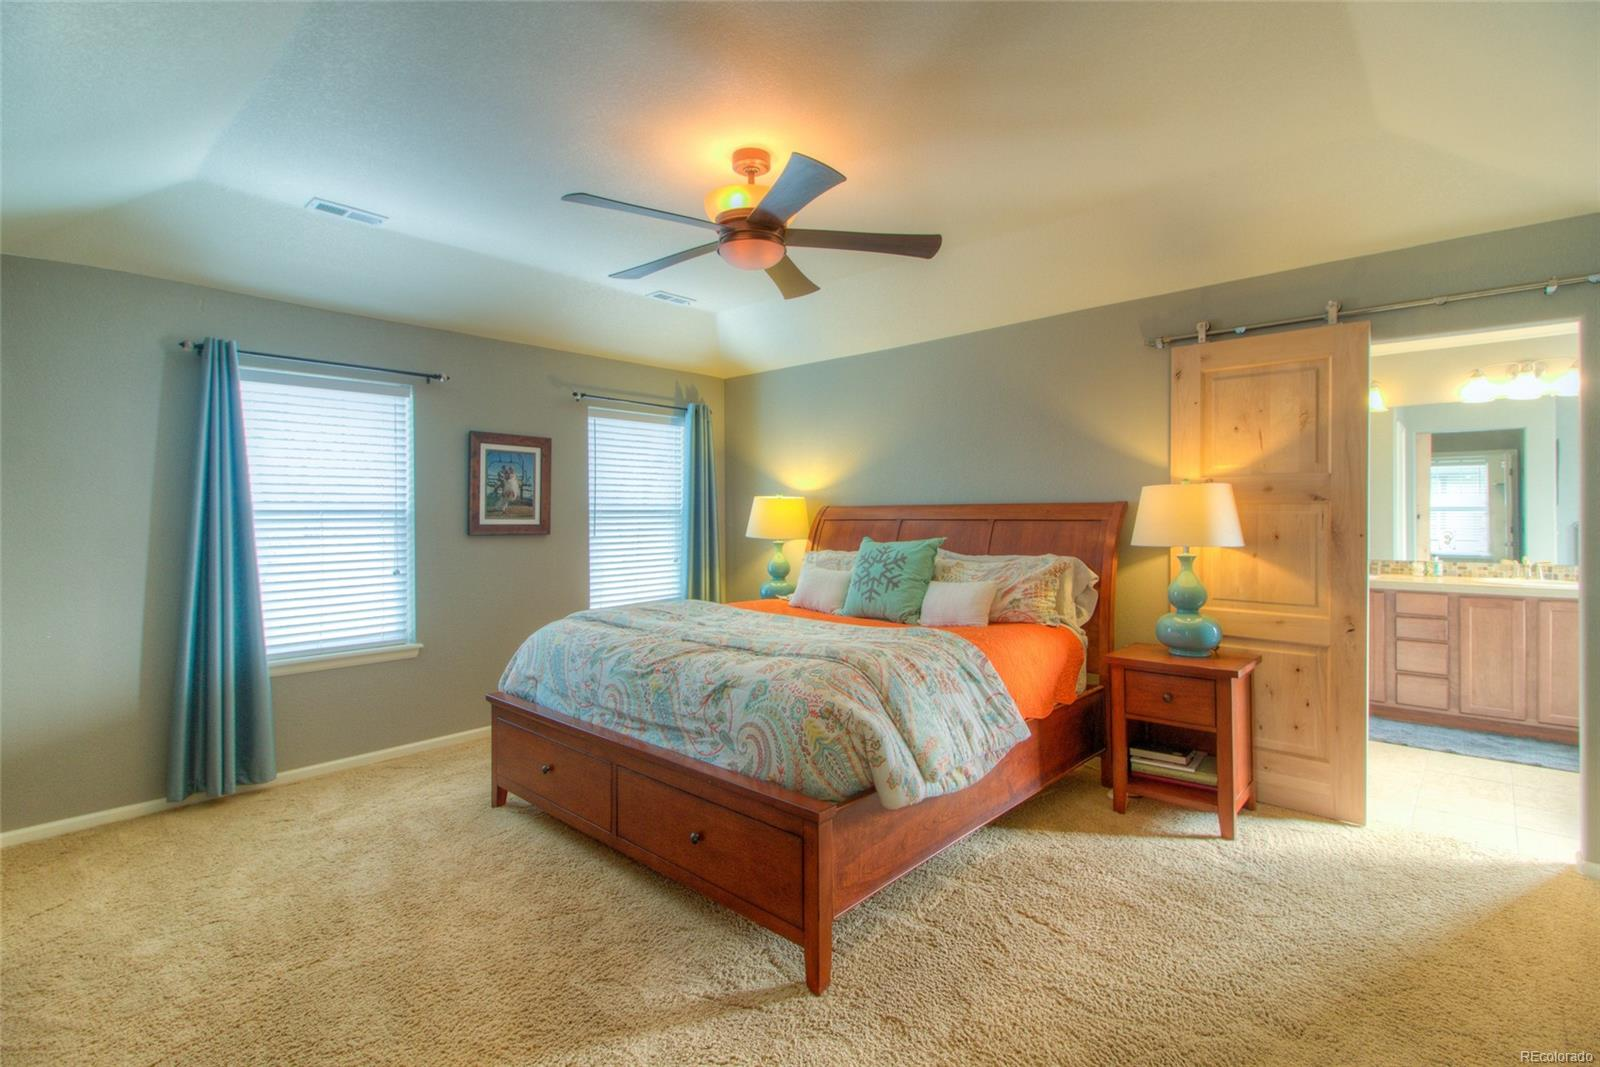 Huge Master Bedroom with in-lay ceiling and barn door to master bath